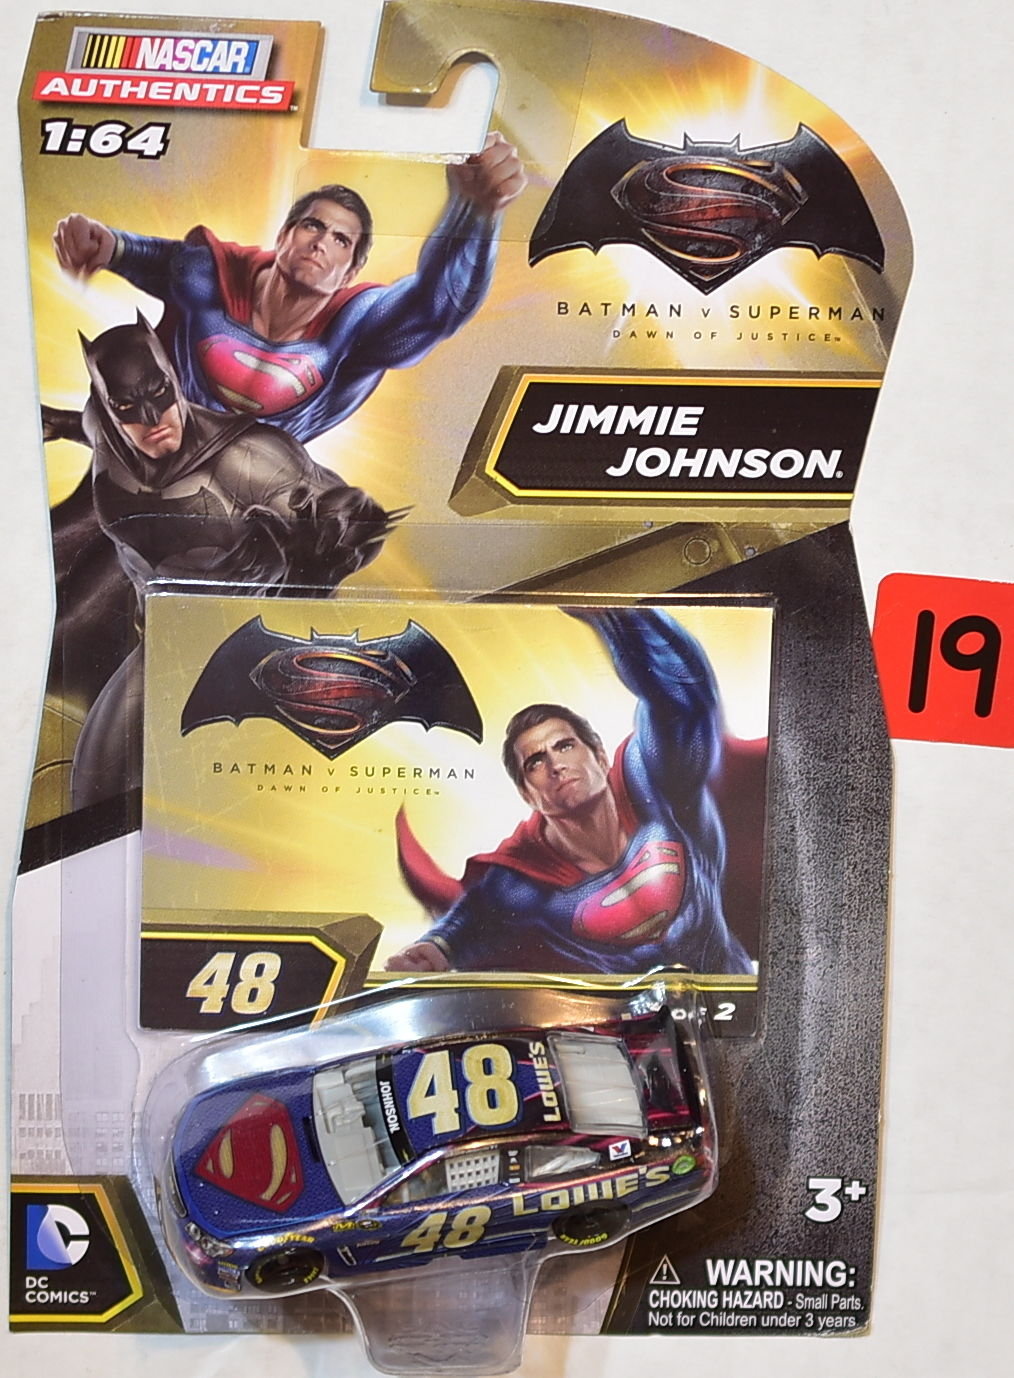 NASCAR AUTHENTICS 1:64 DC COMICS BATMAN V SUPERMAN JIMMIE JOHNSON